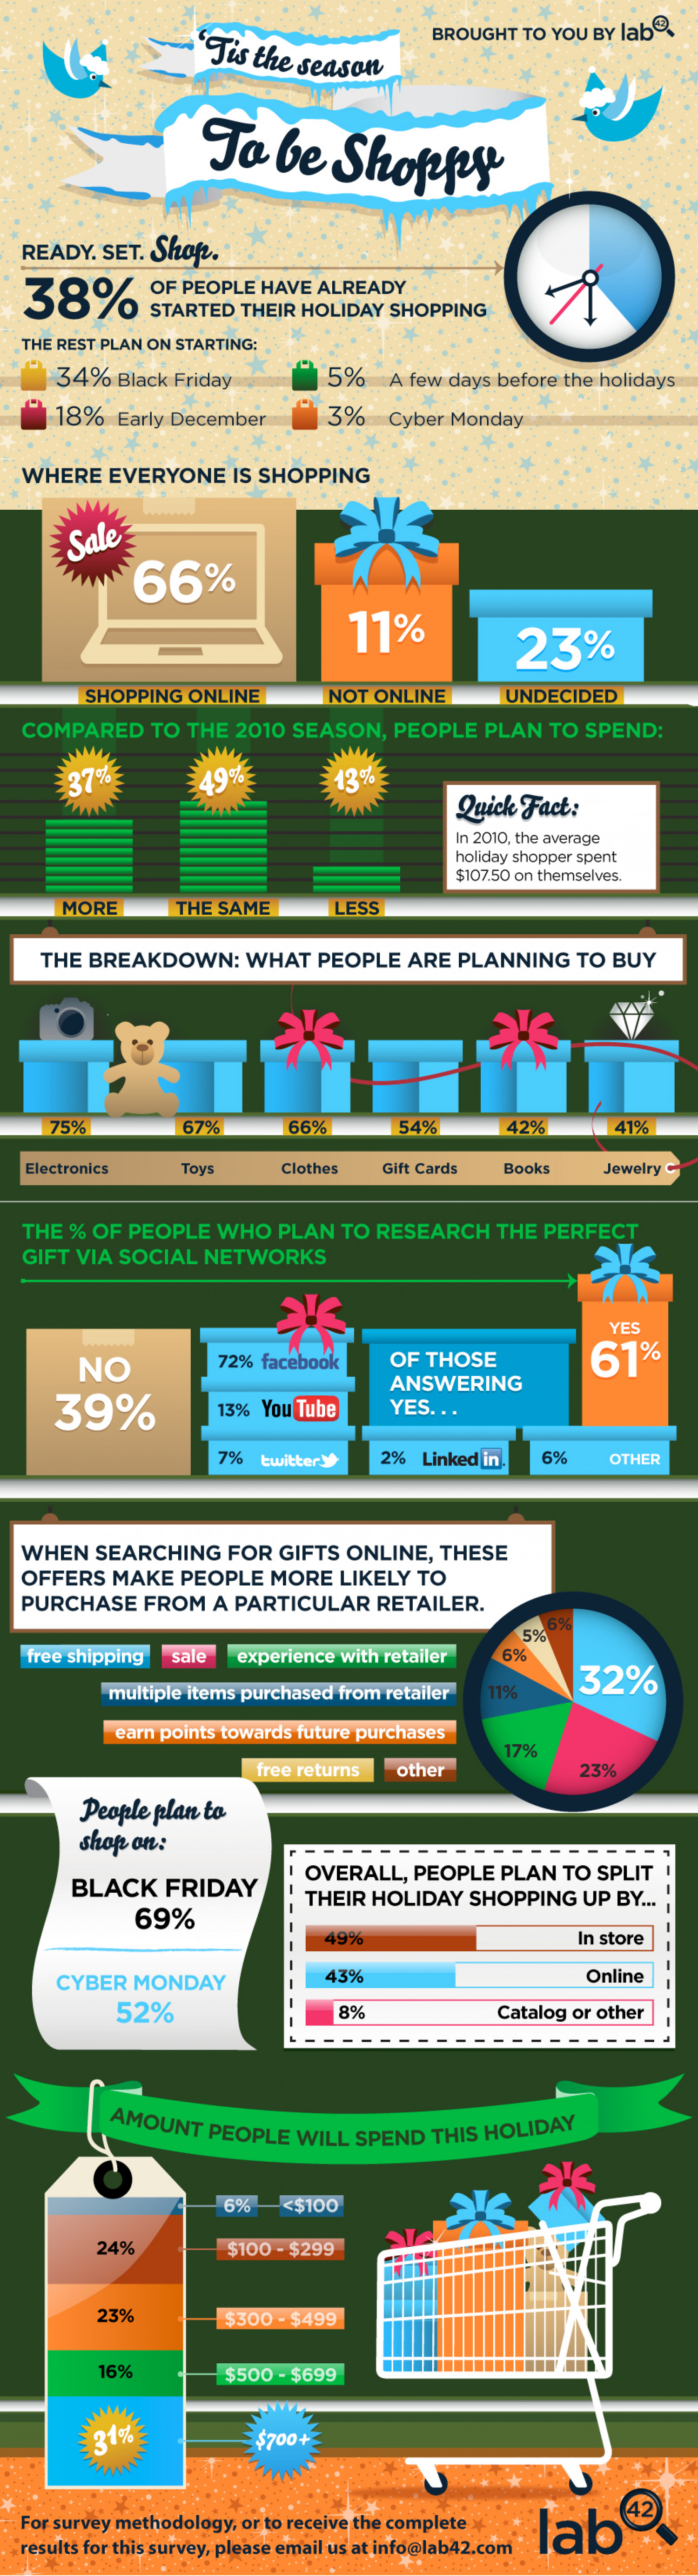 How Much Will Consumers Spend This Holiday Season? Infographic